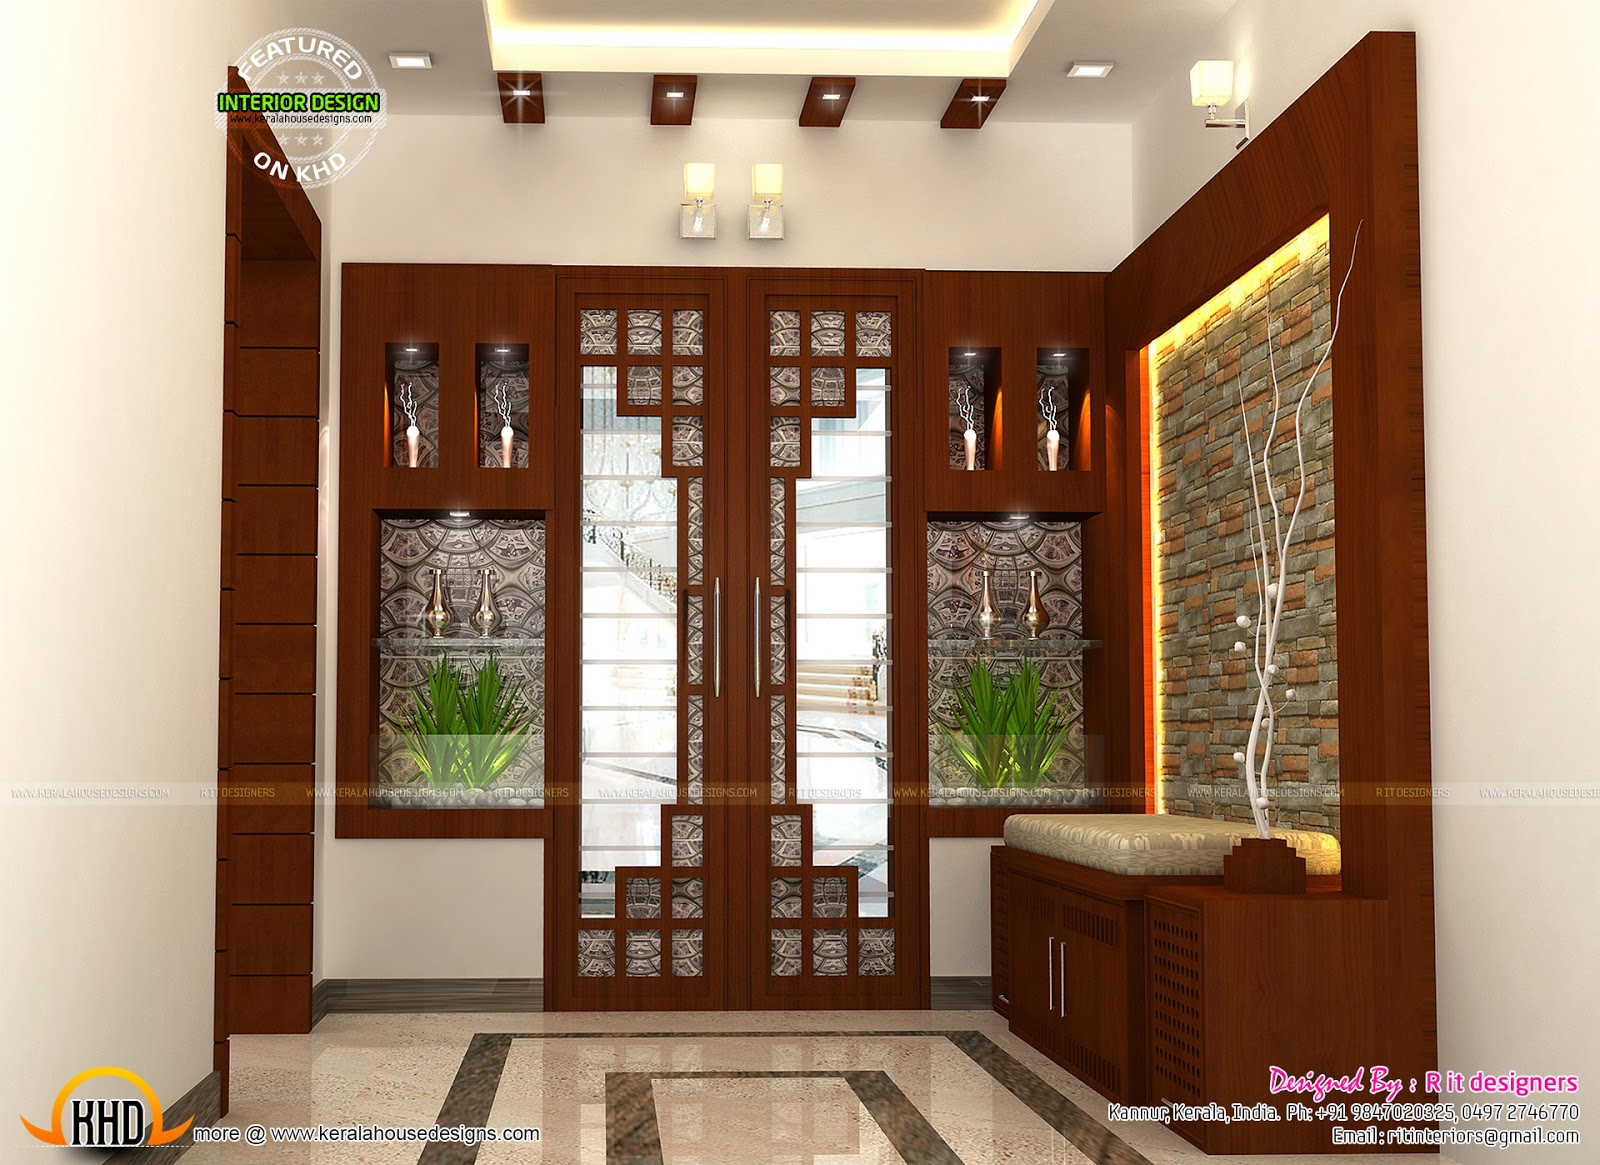 Interior decors by R it designers